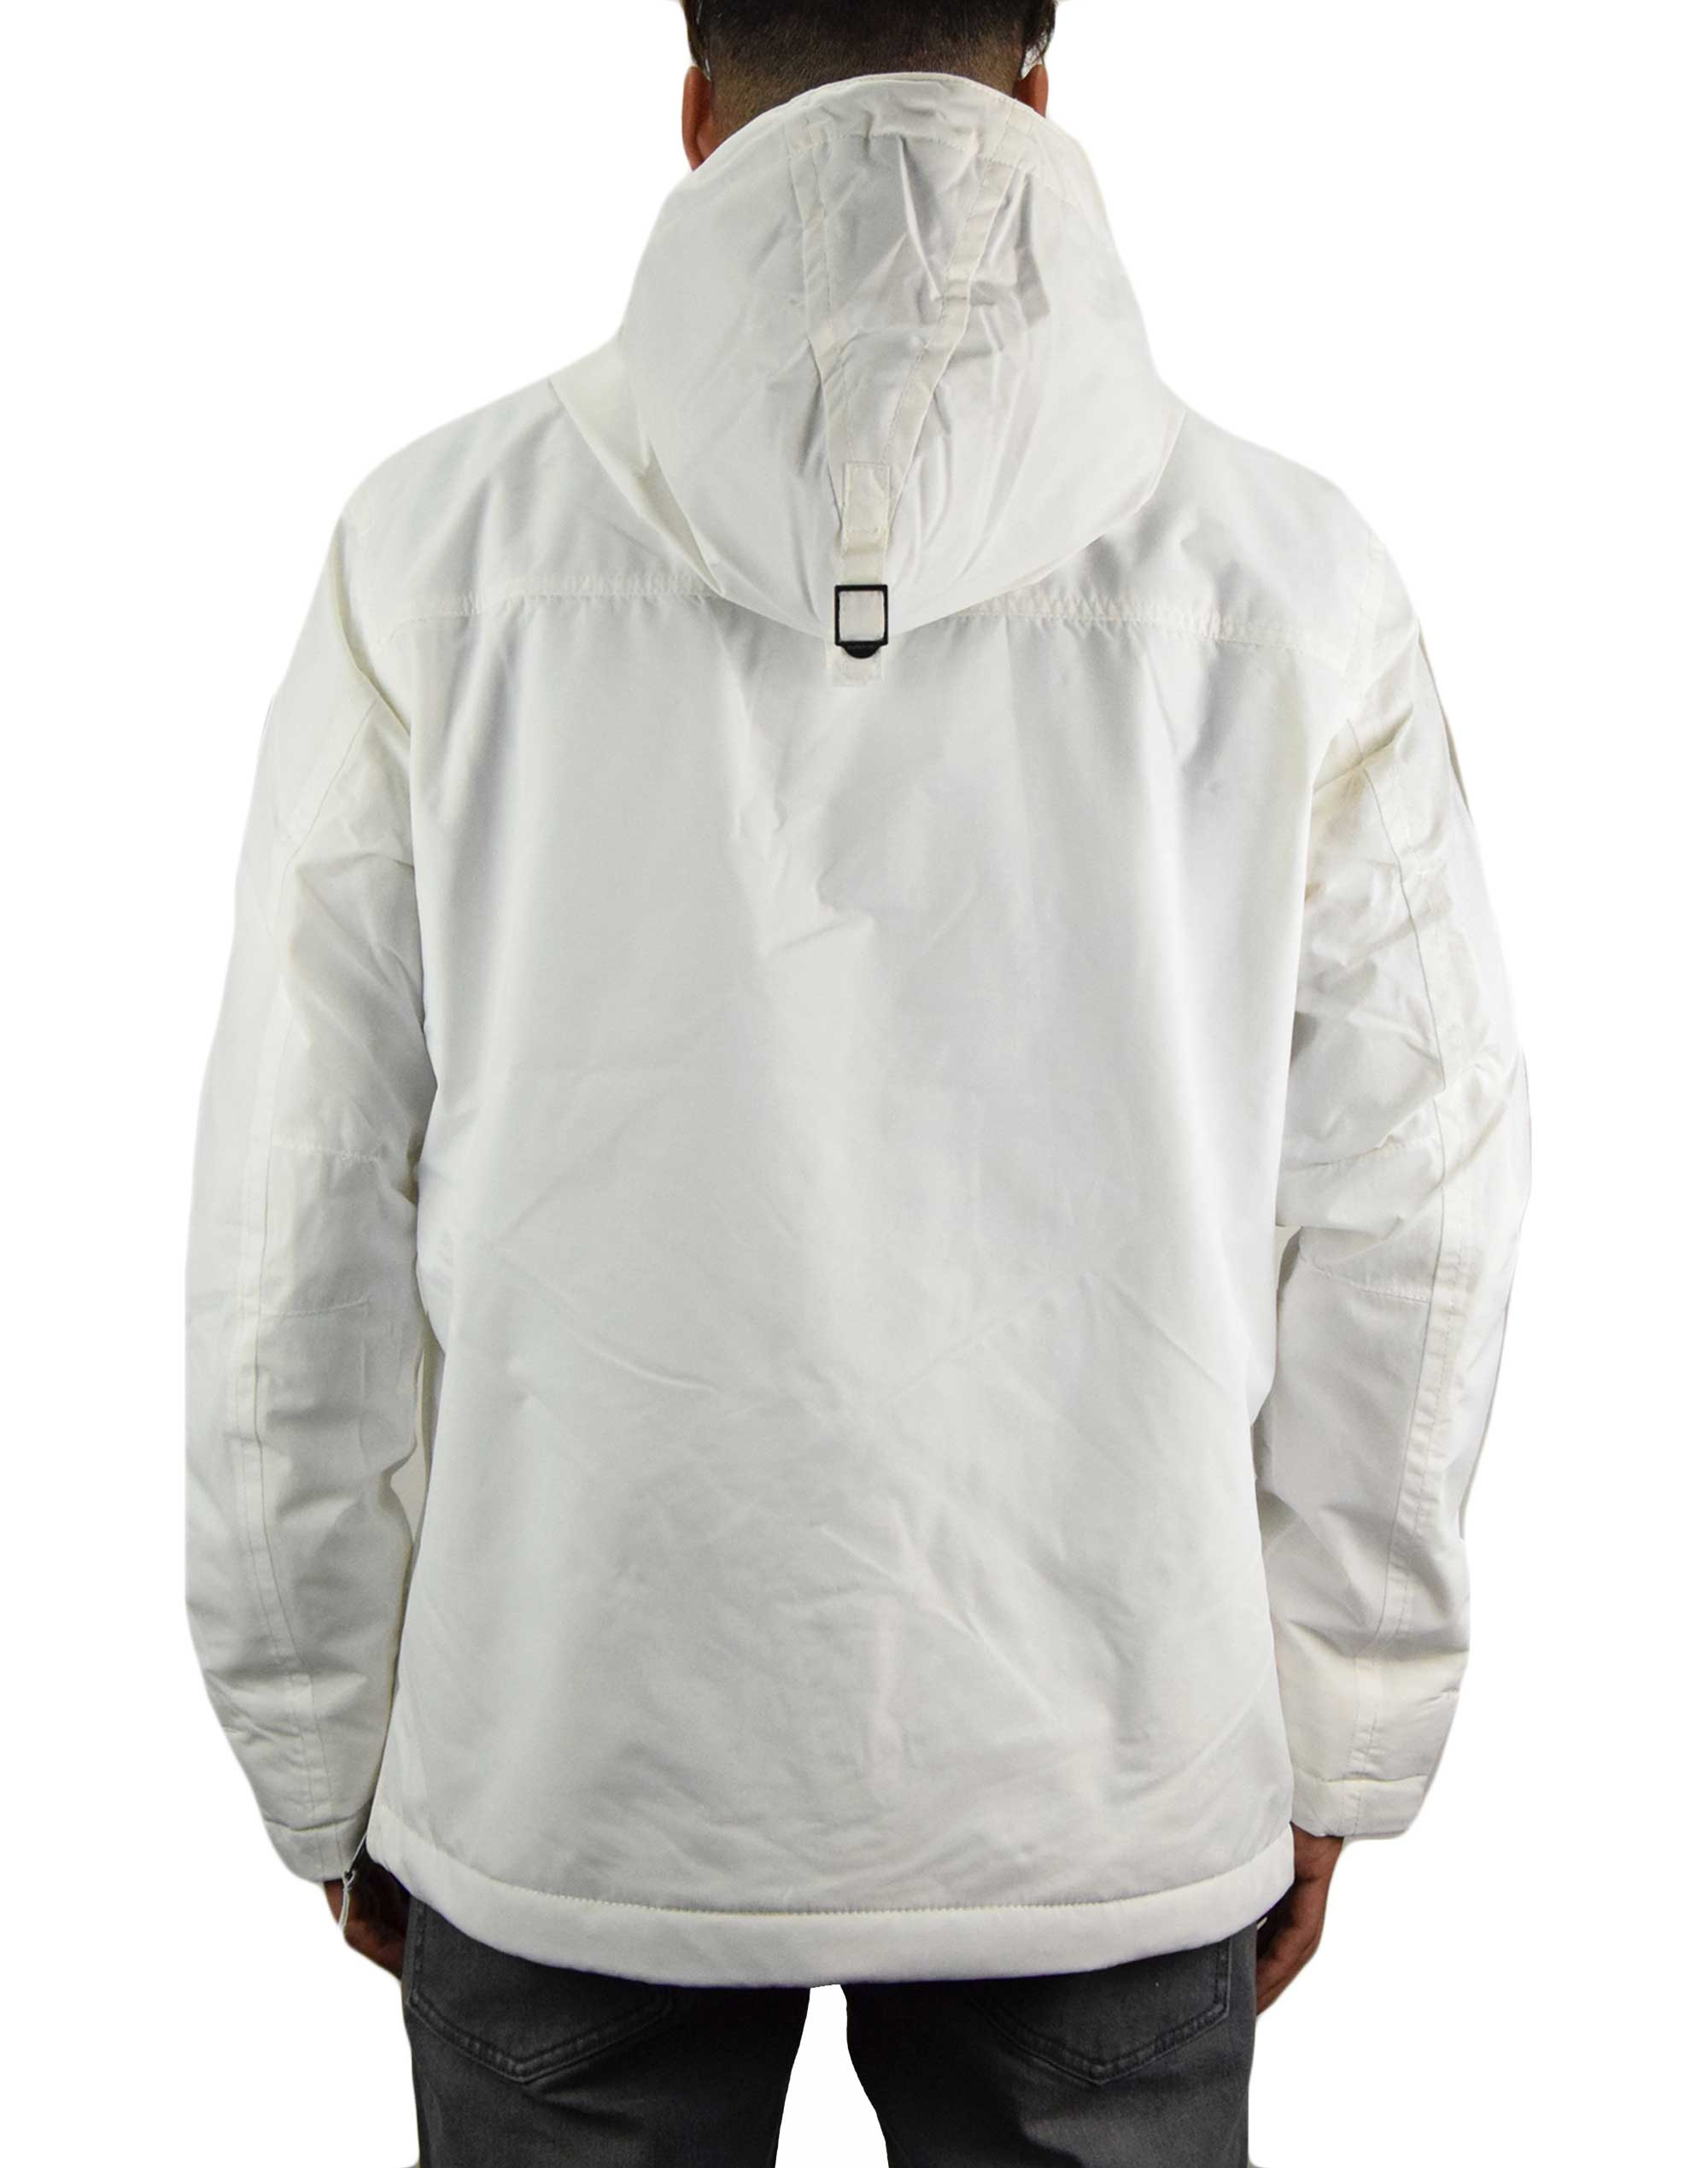 Napapijri Rainforest Pocket 1 Jacket (NP0A4EGY0021) Bright White